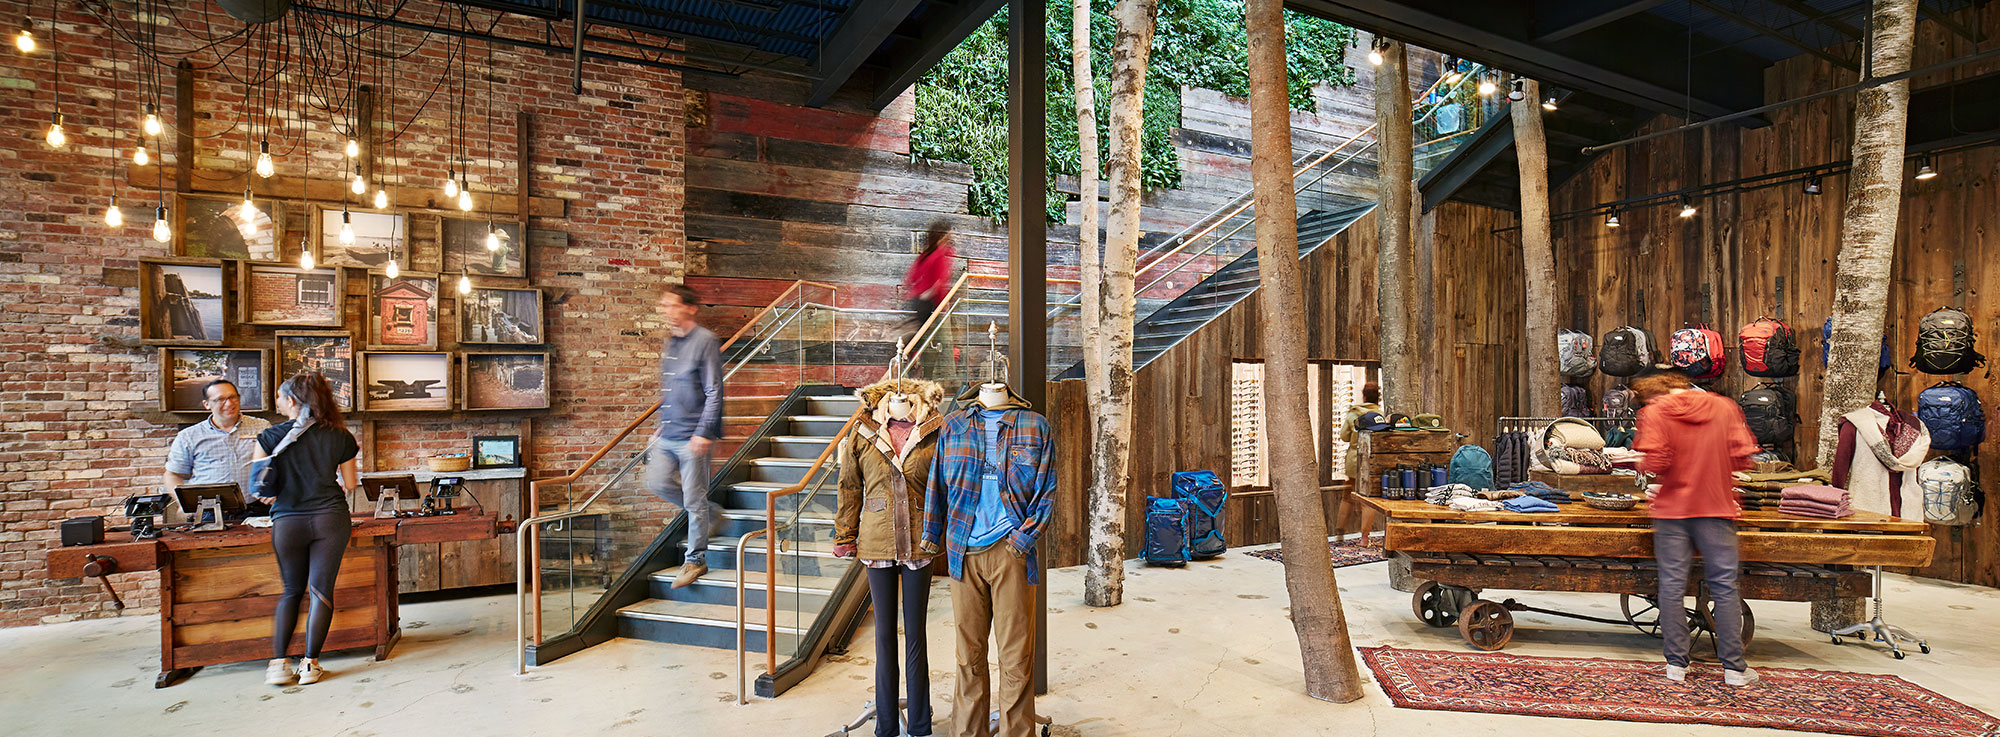 Outdoor Lifestyle Retail Architecture And Design